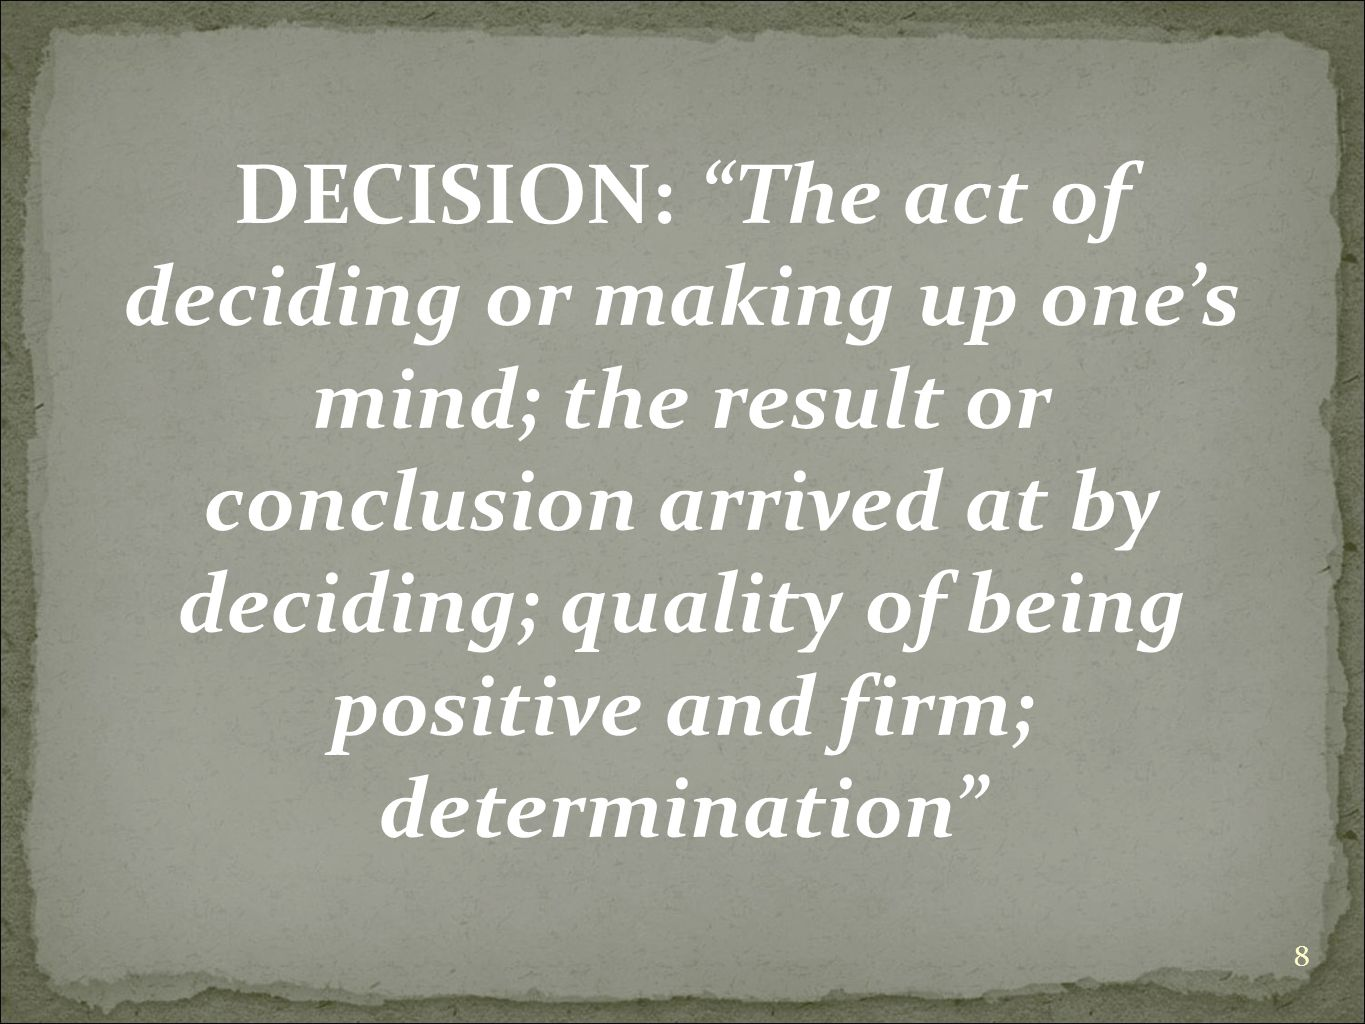 DECISION: The act of deciding or making up one's mind; the result or conclusion arrived at by deciding; quality of being positive and firm; determination